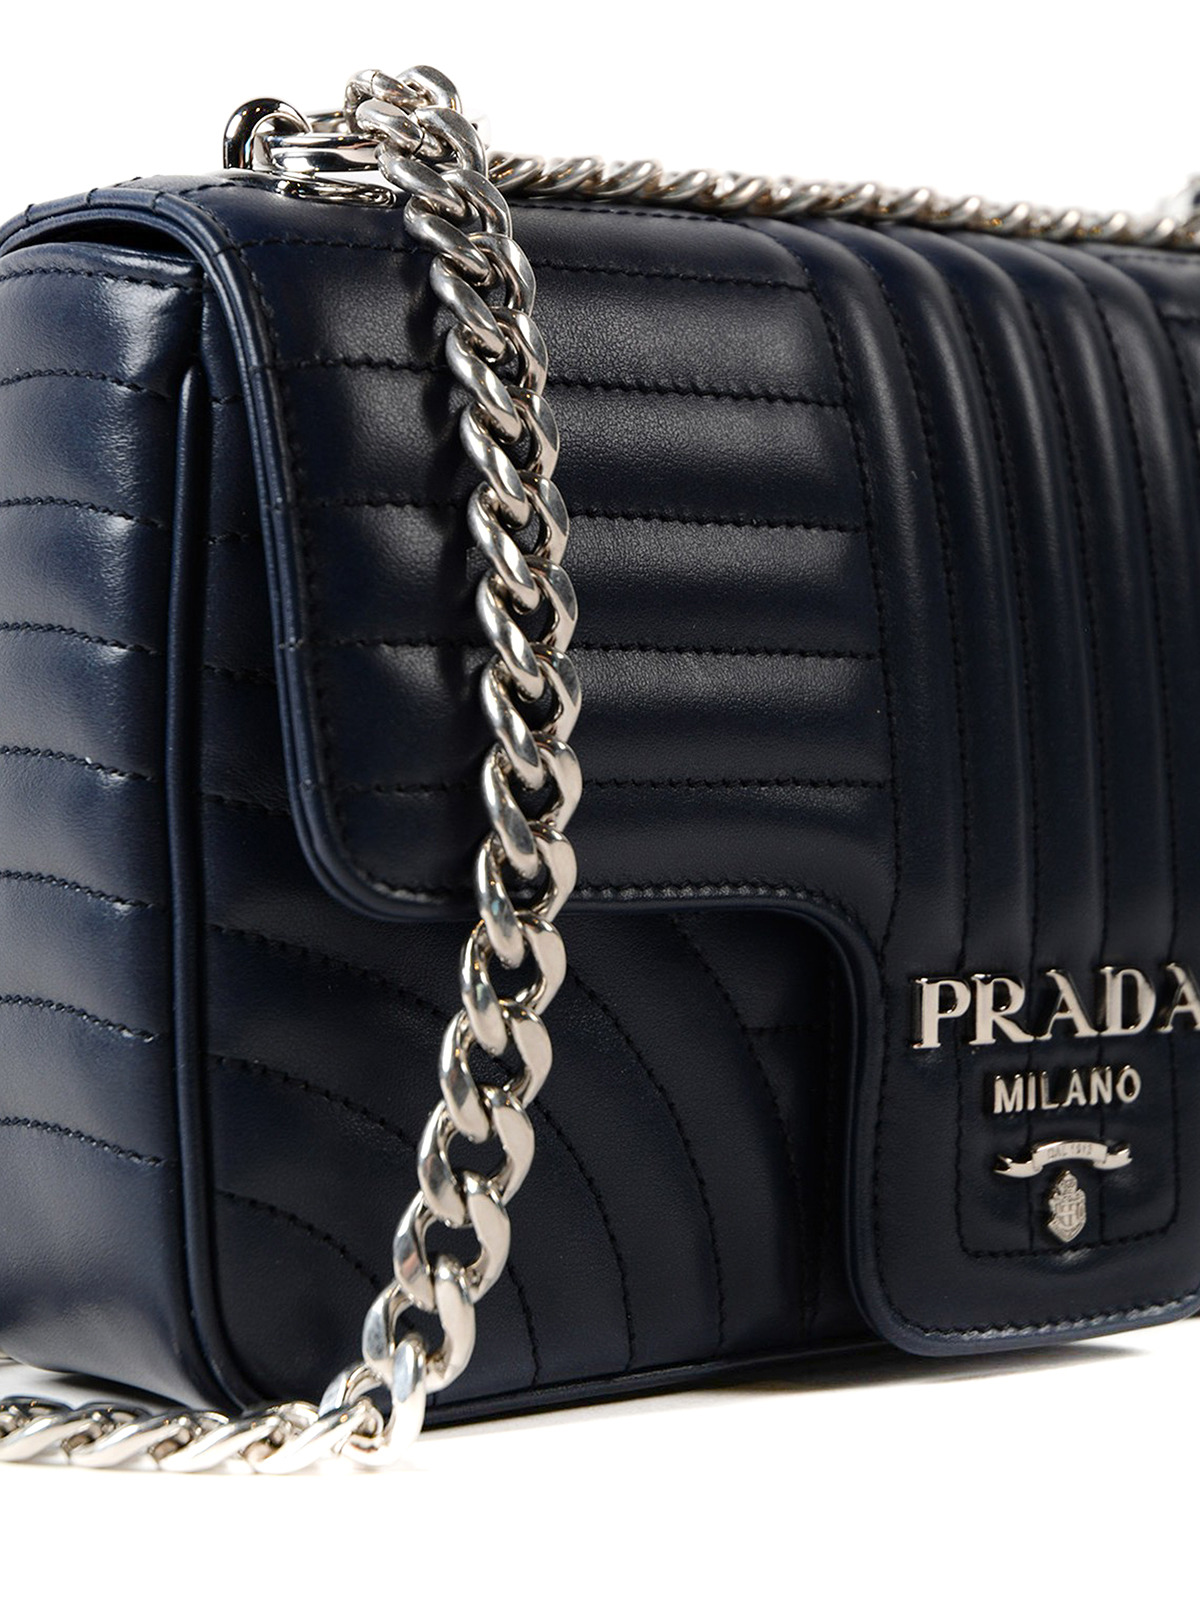 d557a74844b080 Prada - Diagramme leather shoulder bag - shoulder bags ...